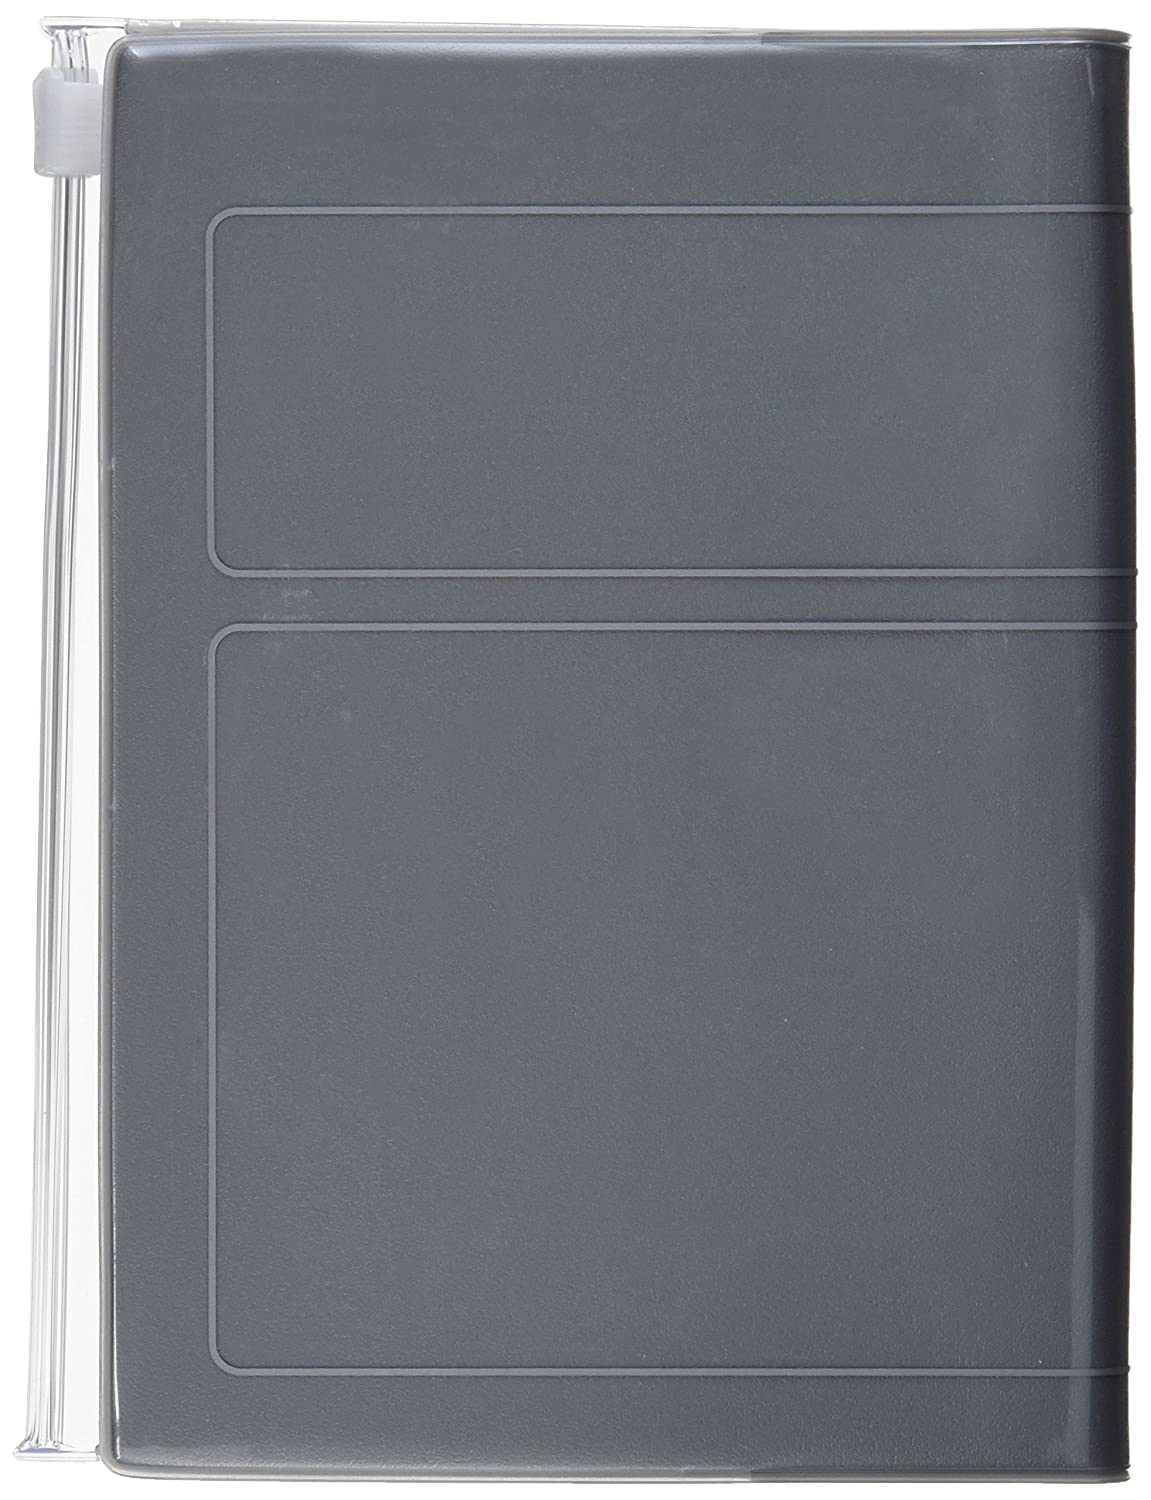 MARKS 2018 Diary Planner Agenda / Weekly Vertical / A6size / Storage.it (AV) / Silver